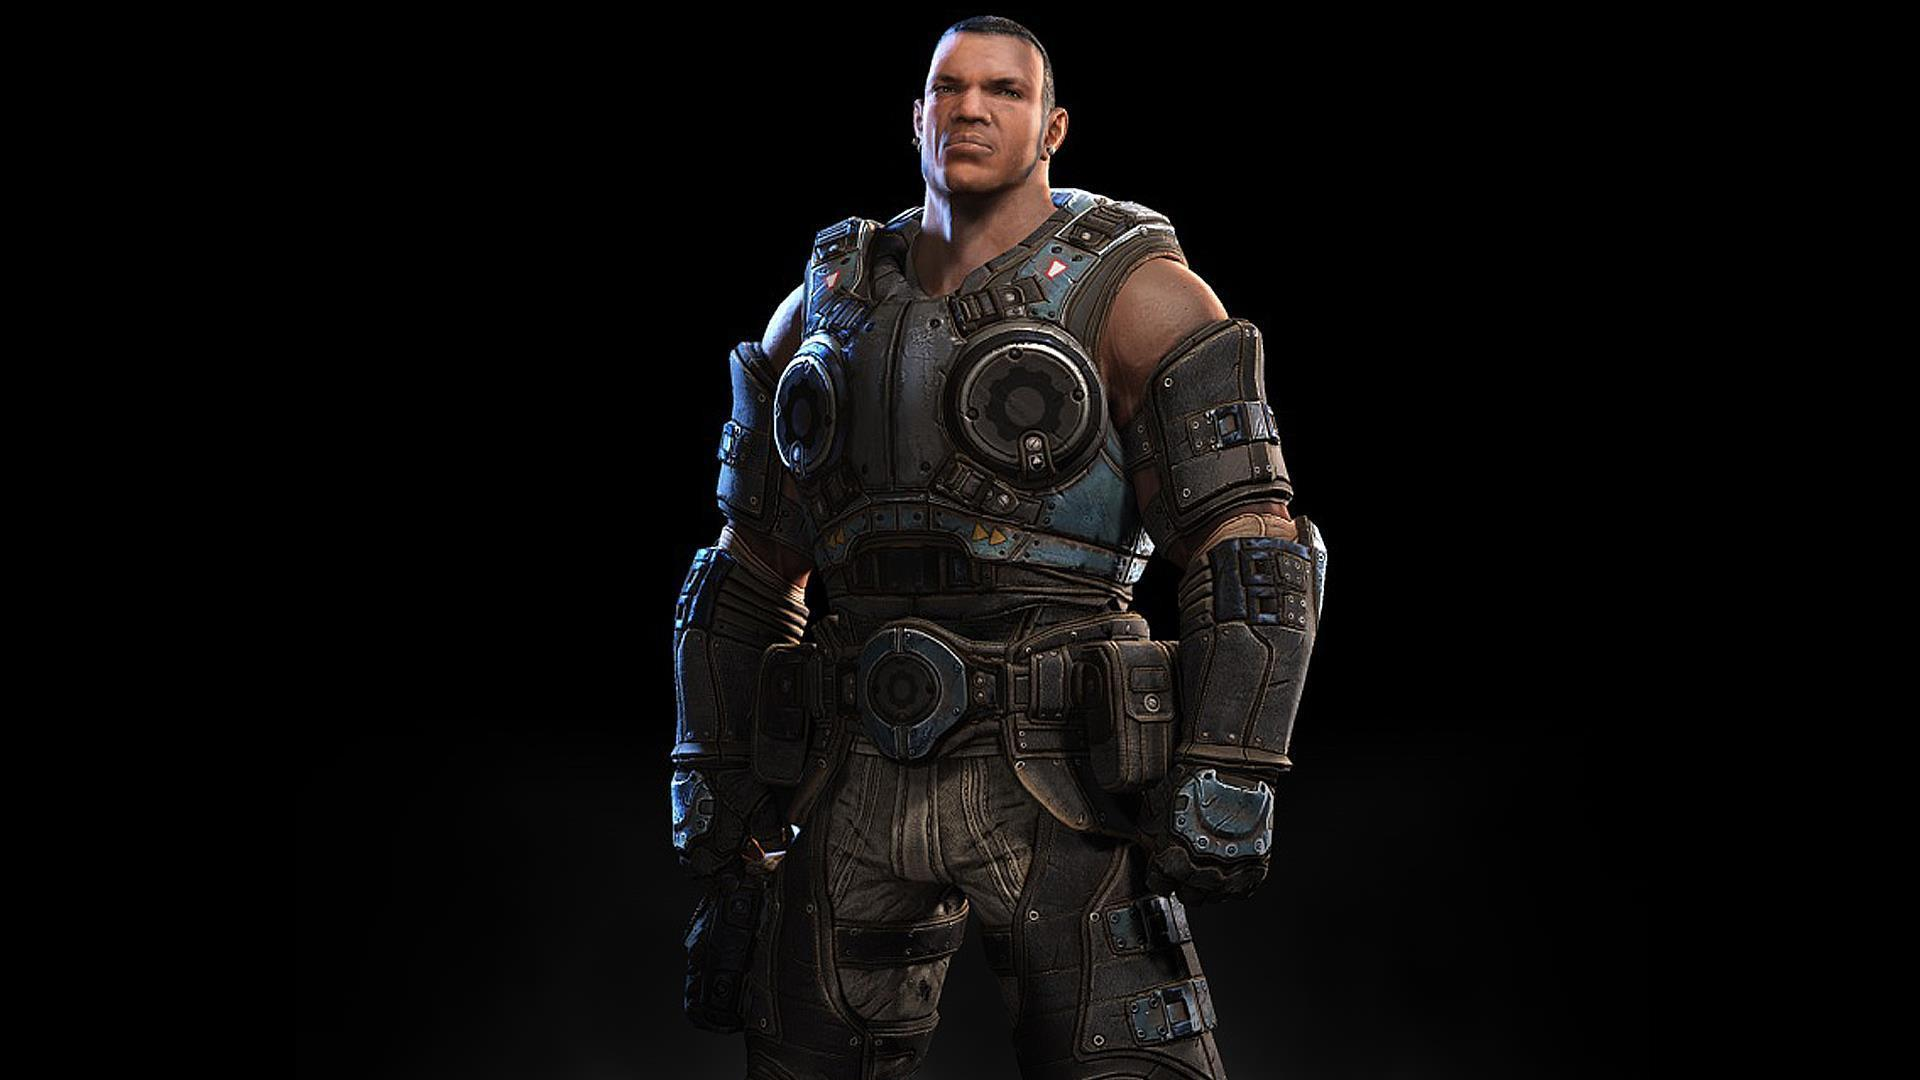 Gears of war 4 rule 34